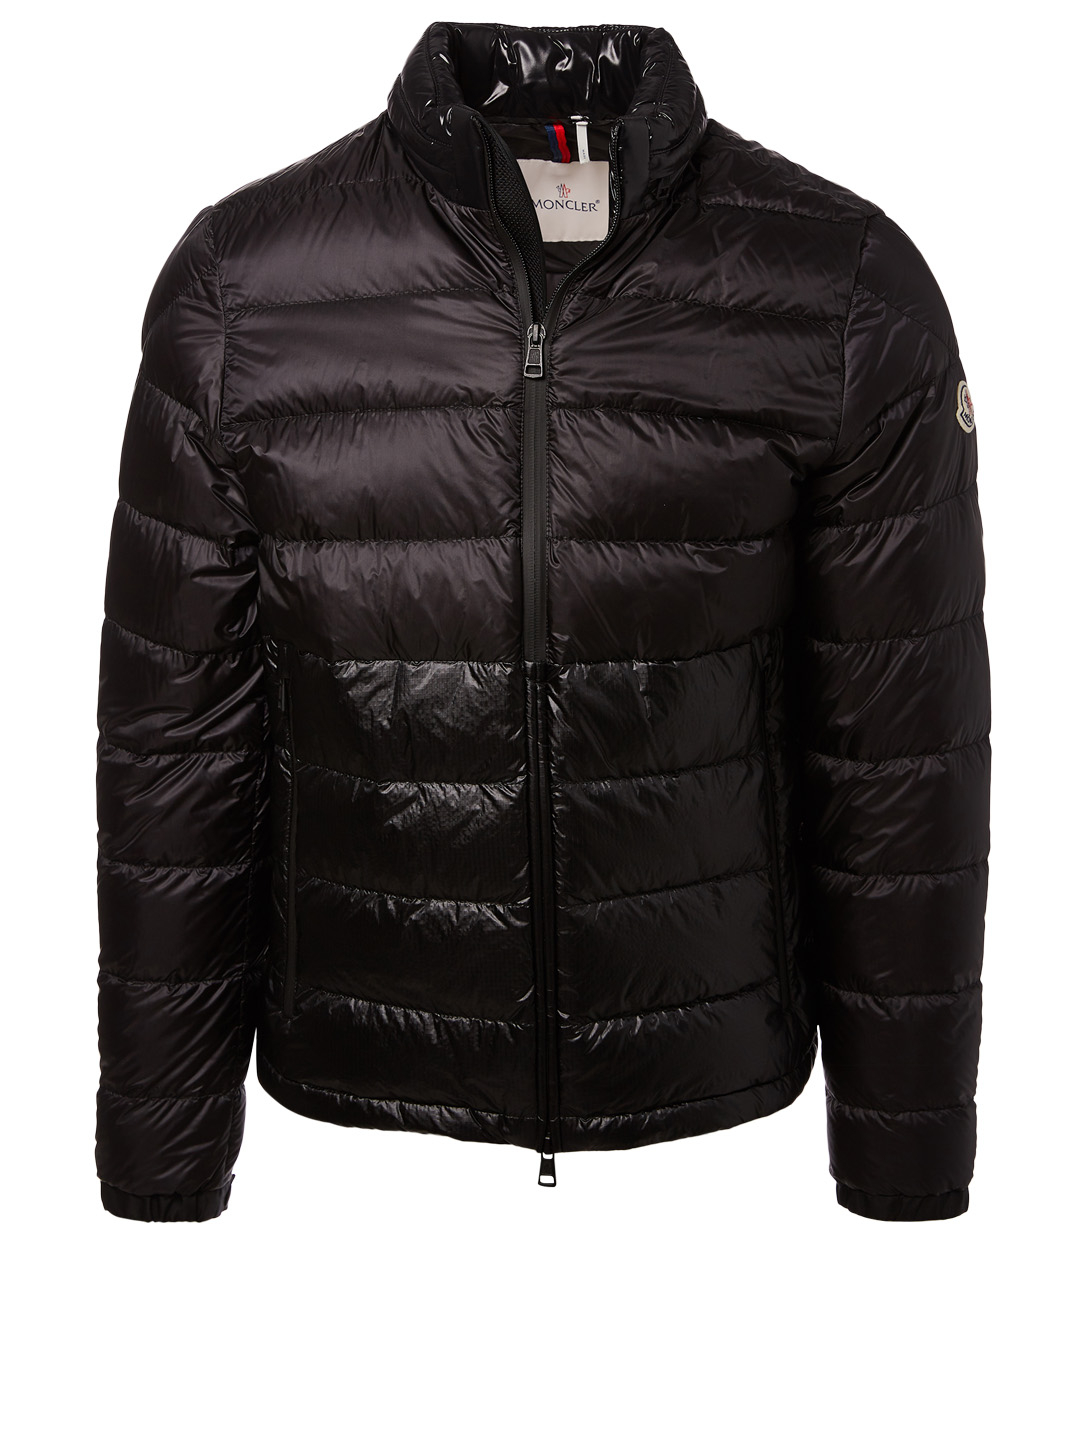 5e28e6e6ac48 MONCLER Aimar Down Puffer Jacket Men s Black ...